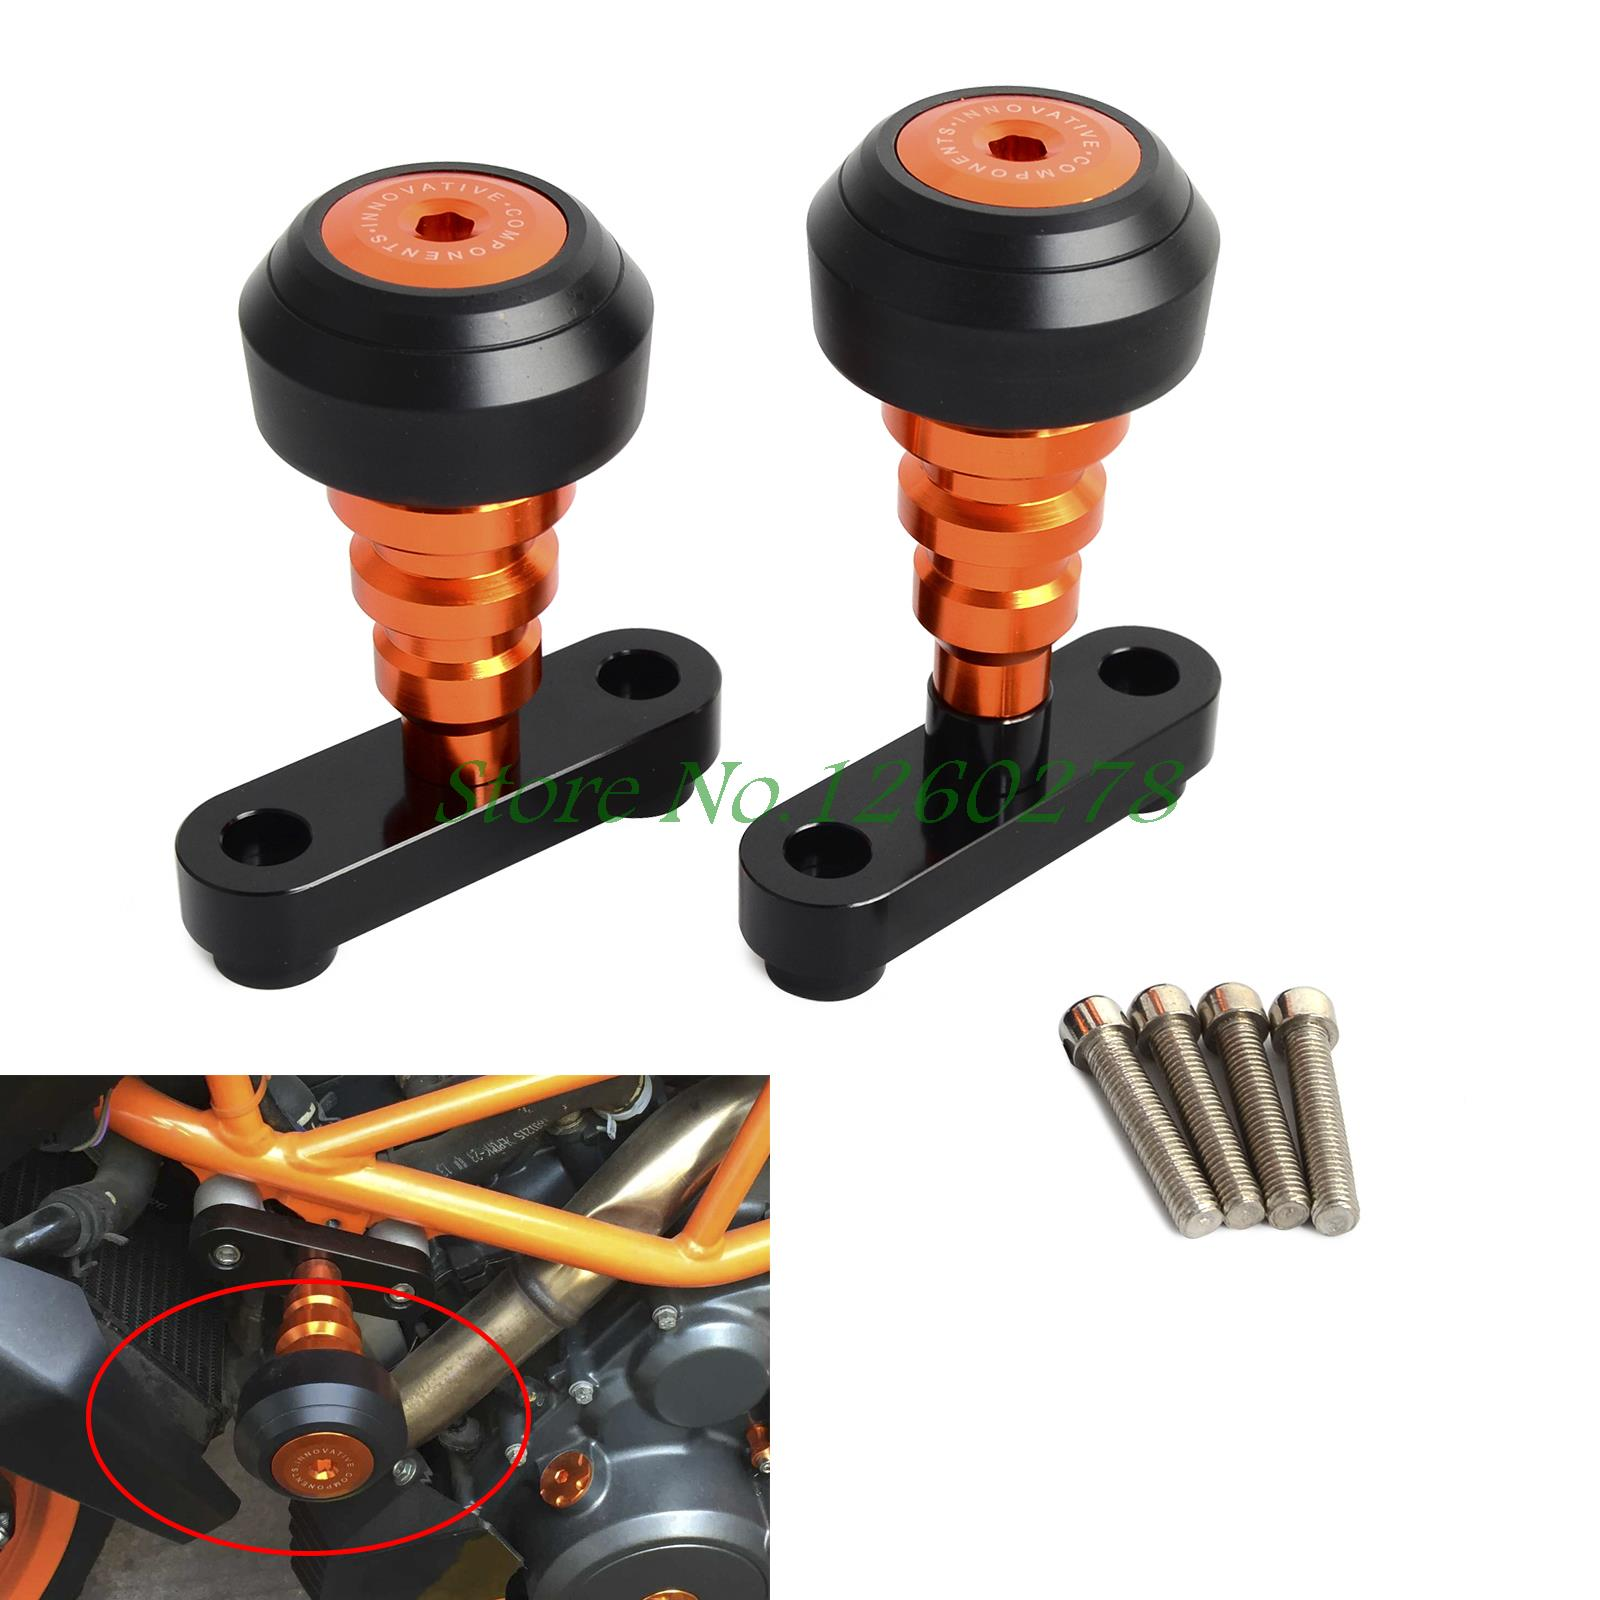 Motorcycle Frame Sliders Crash Protector Sturzpad Crashpads For KTM DUKE 200 2012-2017 390 DUKE 2013 2014 2015 2016 2017